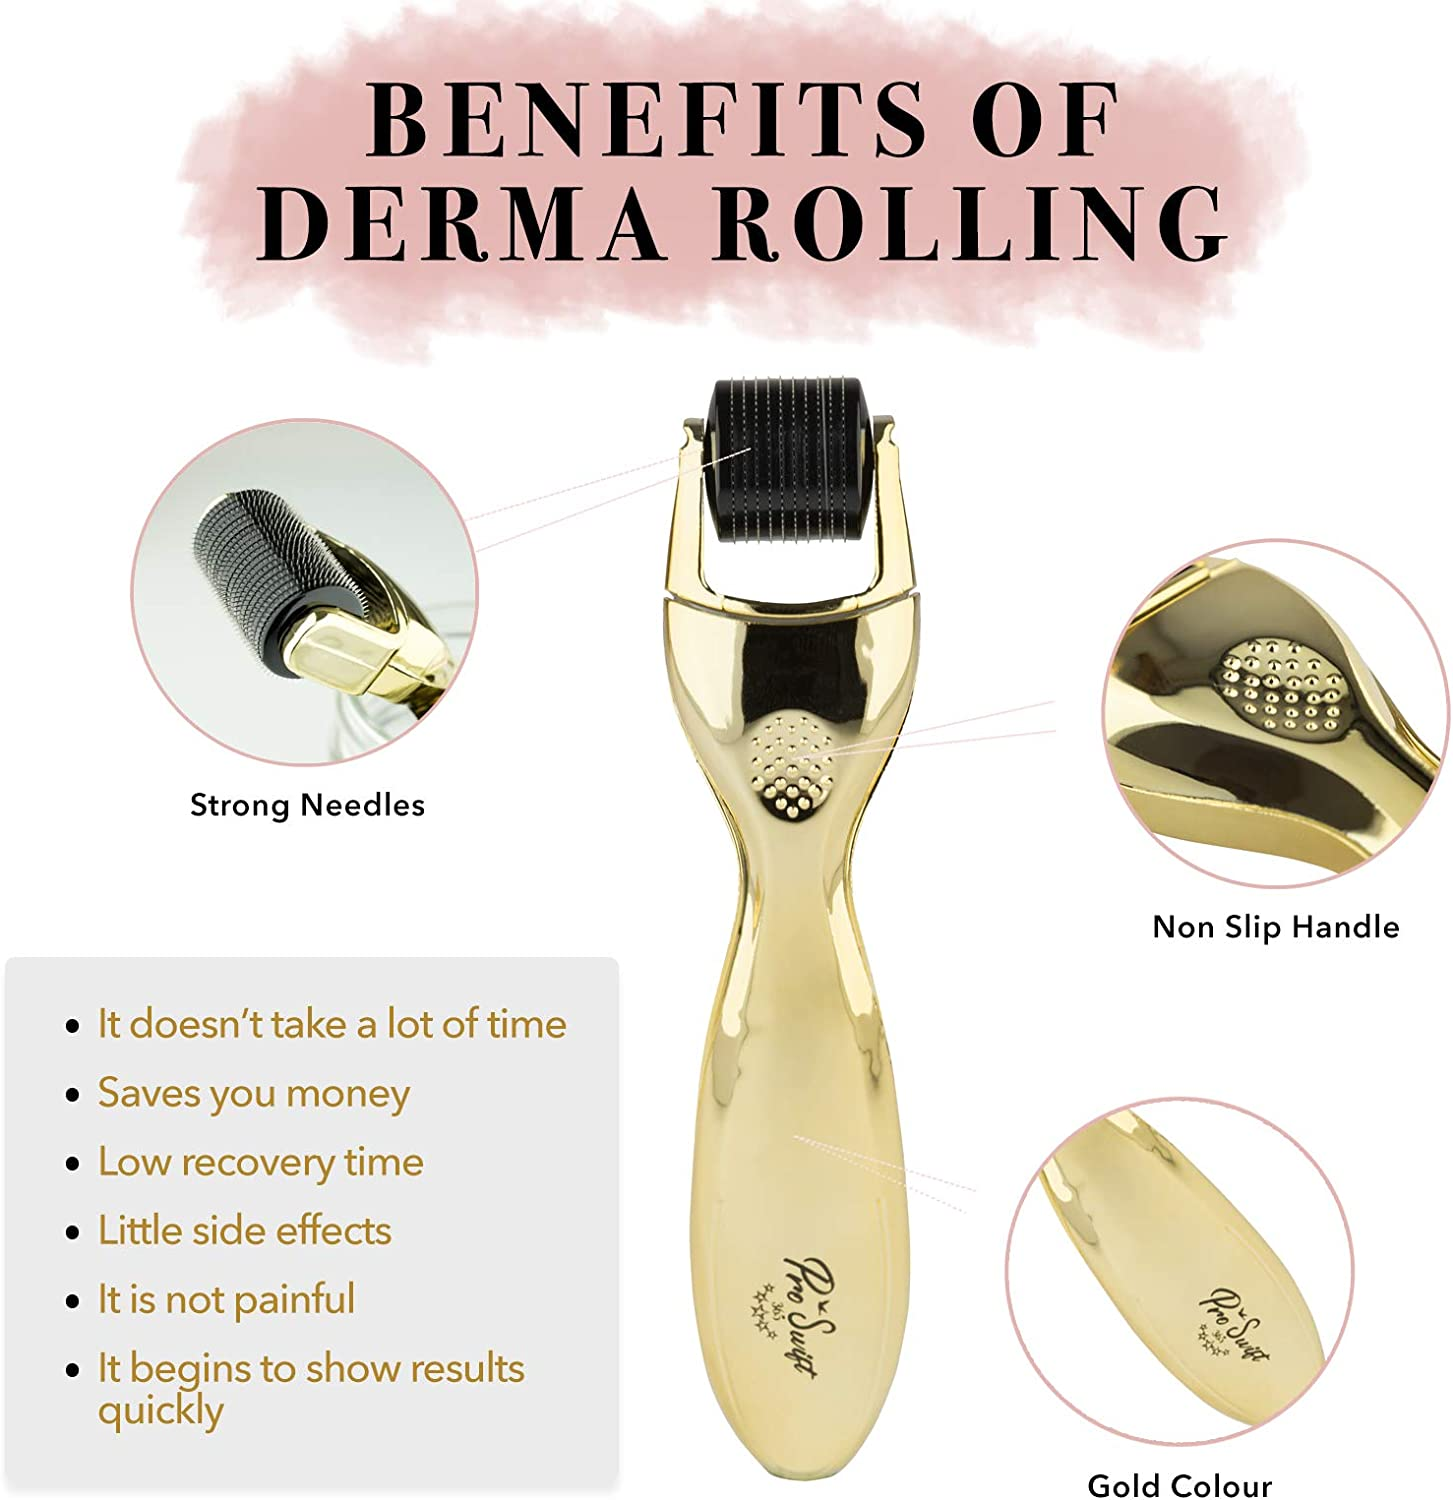 Proswift PREMIUM Derma Roller 3-in-1 Complete Kit, Inc Hydrating Vitamin C Serum, Crystal Collagen Eye Mask + Ebook. 3 Titanium Microneedle Rollers Activate Collagen, Removes Fine Lines & Wrinkles.: Amazon.es: Belleza